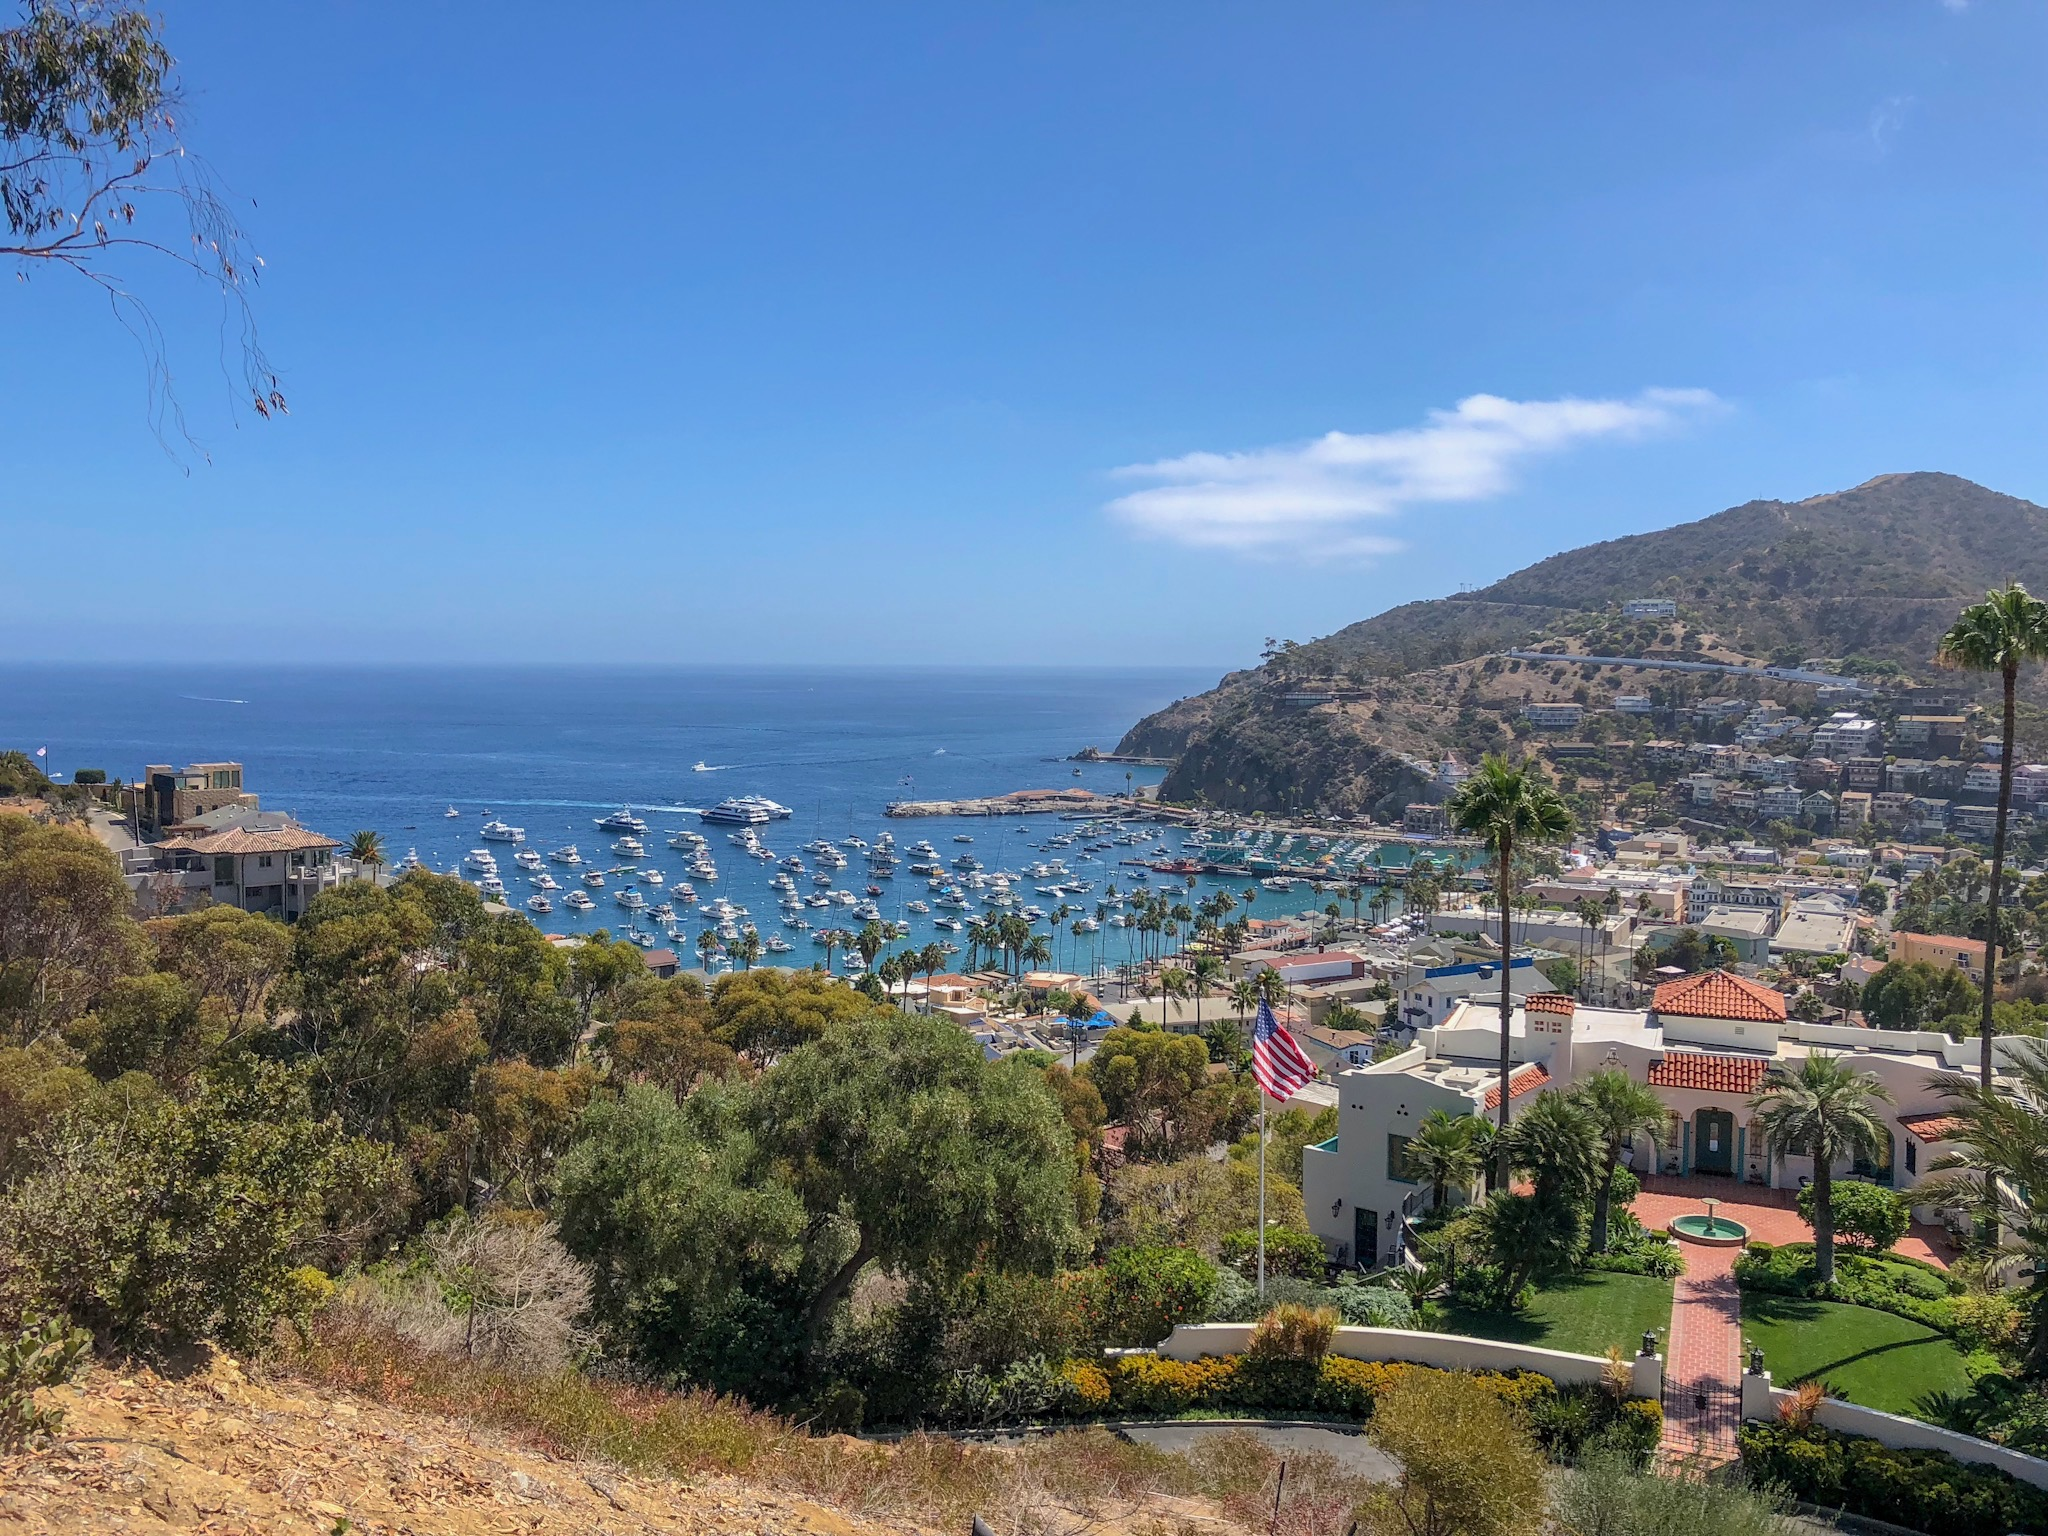 Catalina day trip